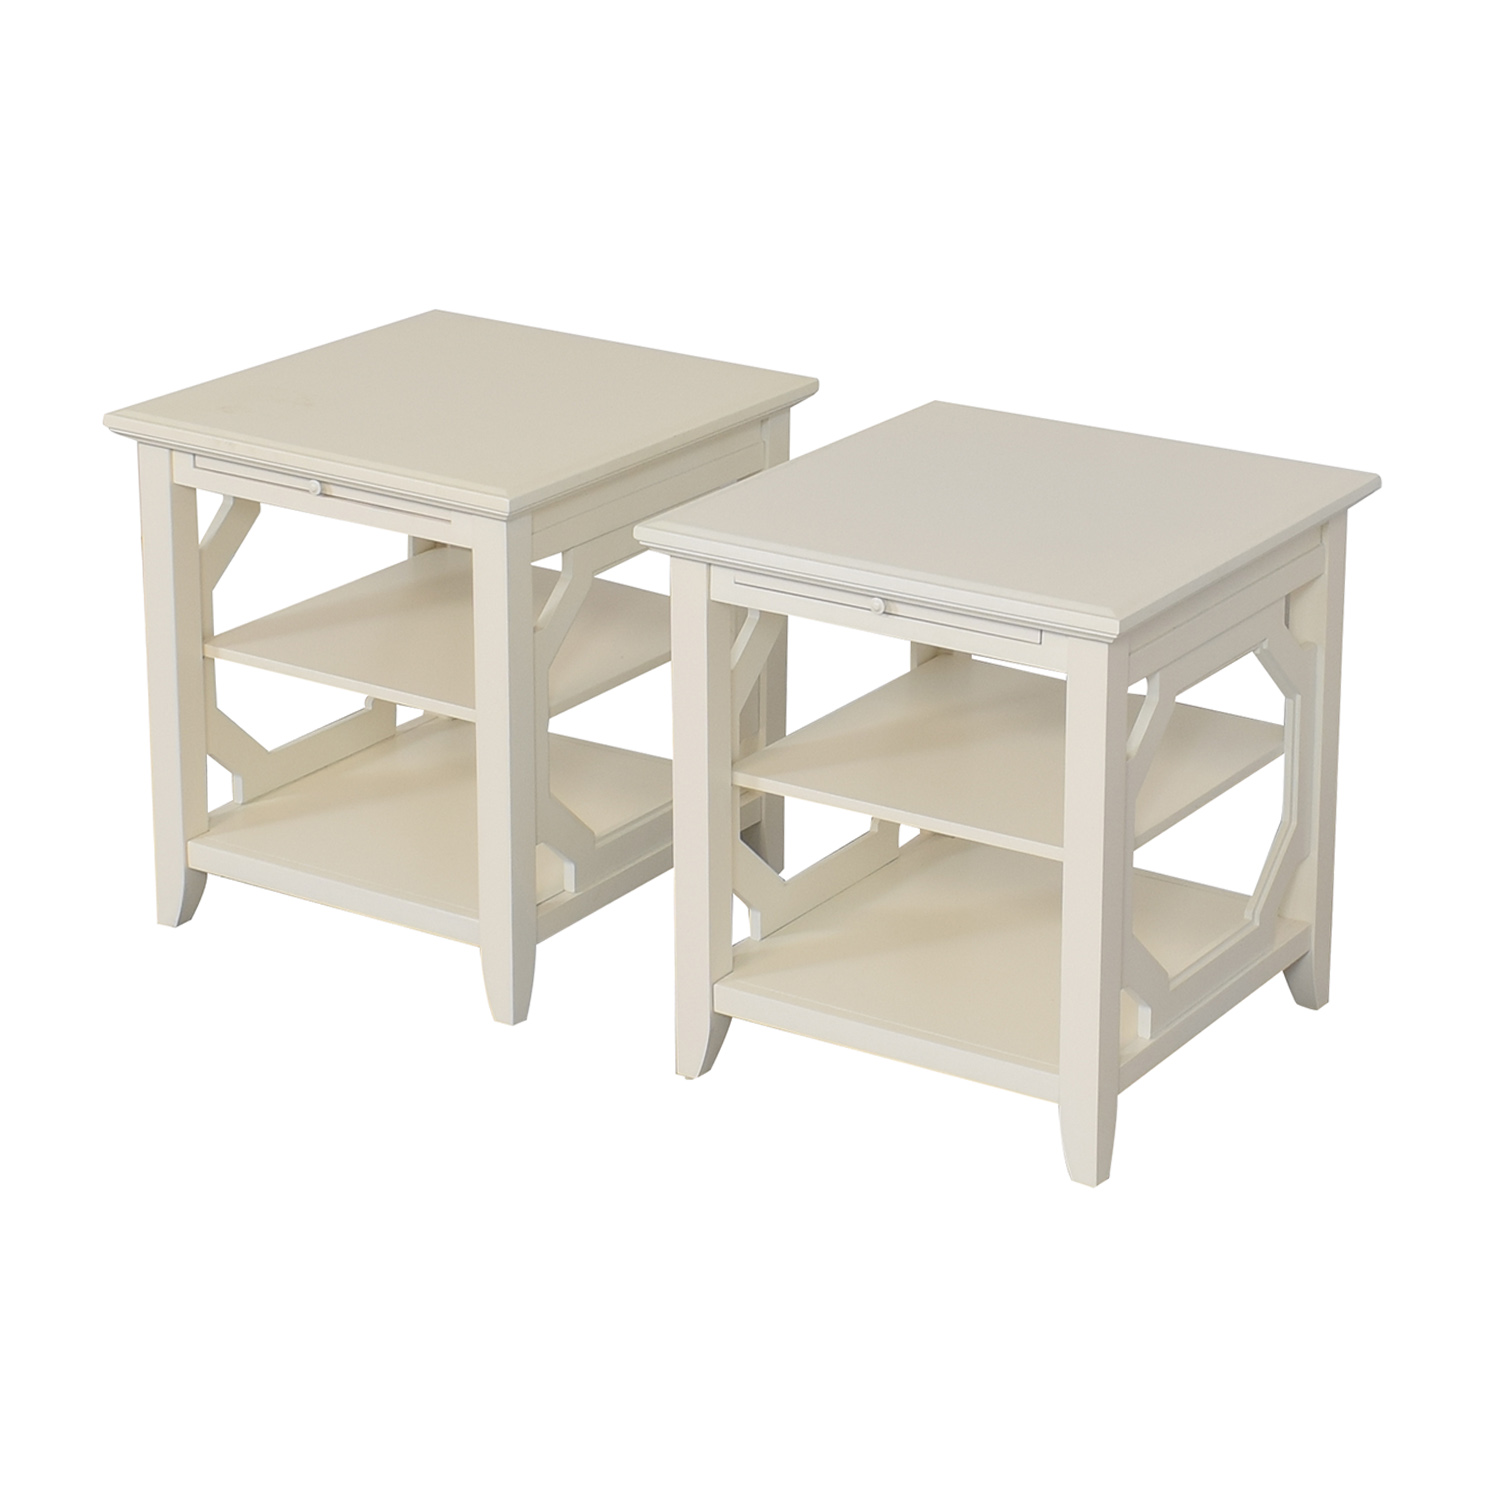 shop Raymour & Flanigan End Tables Raymour & Flanigan